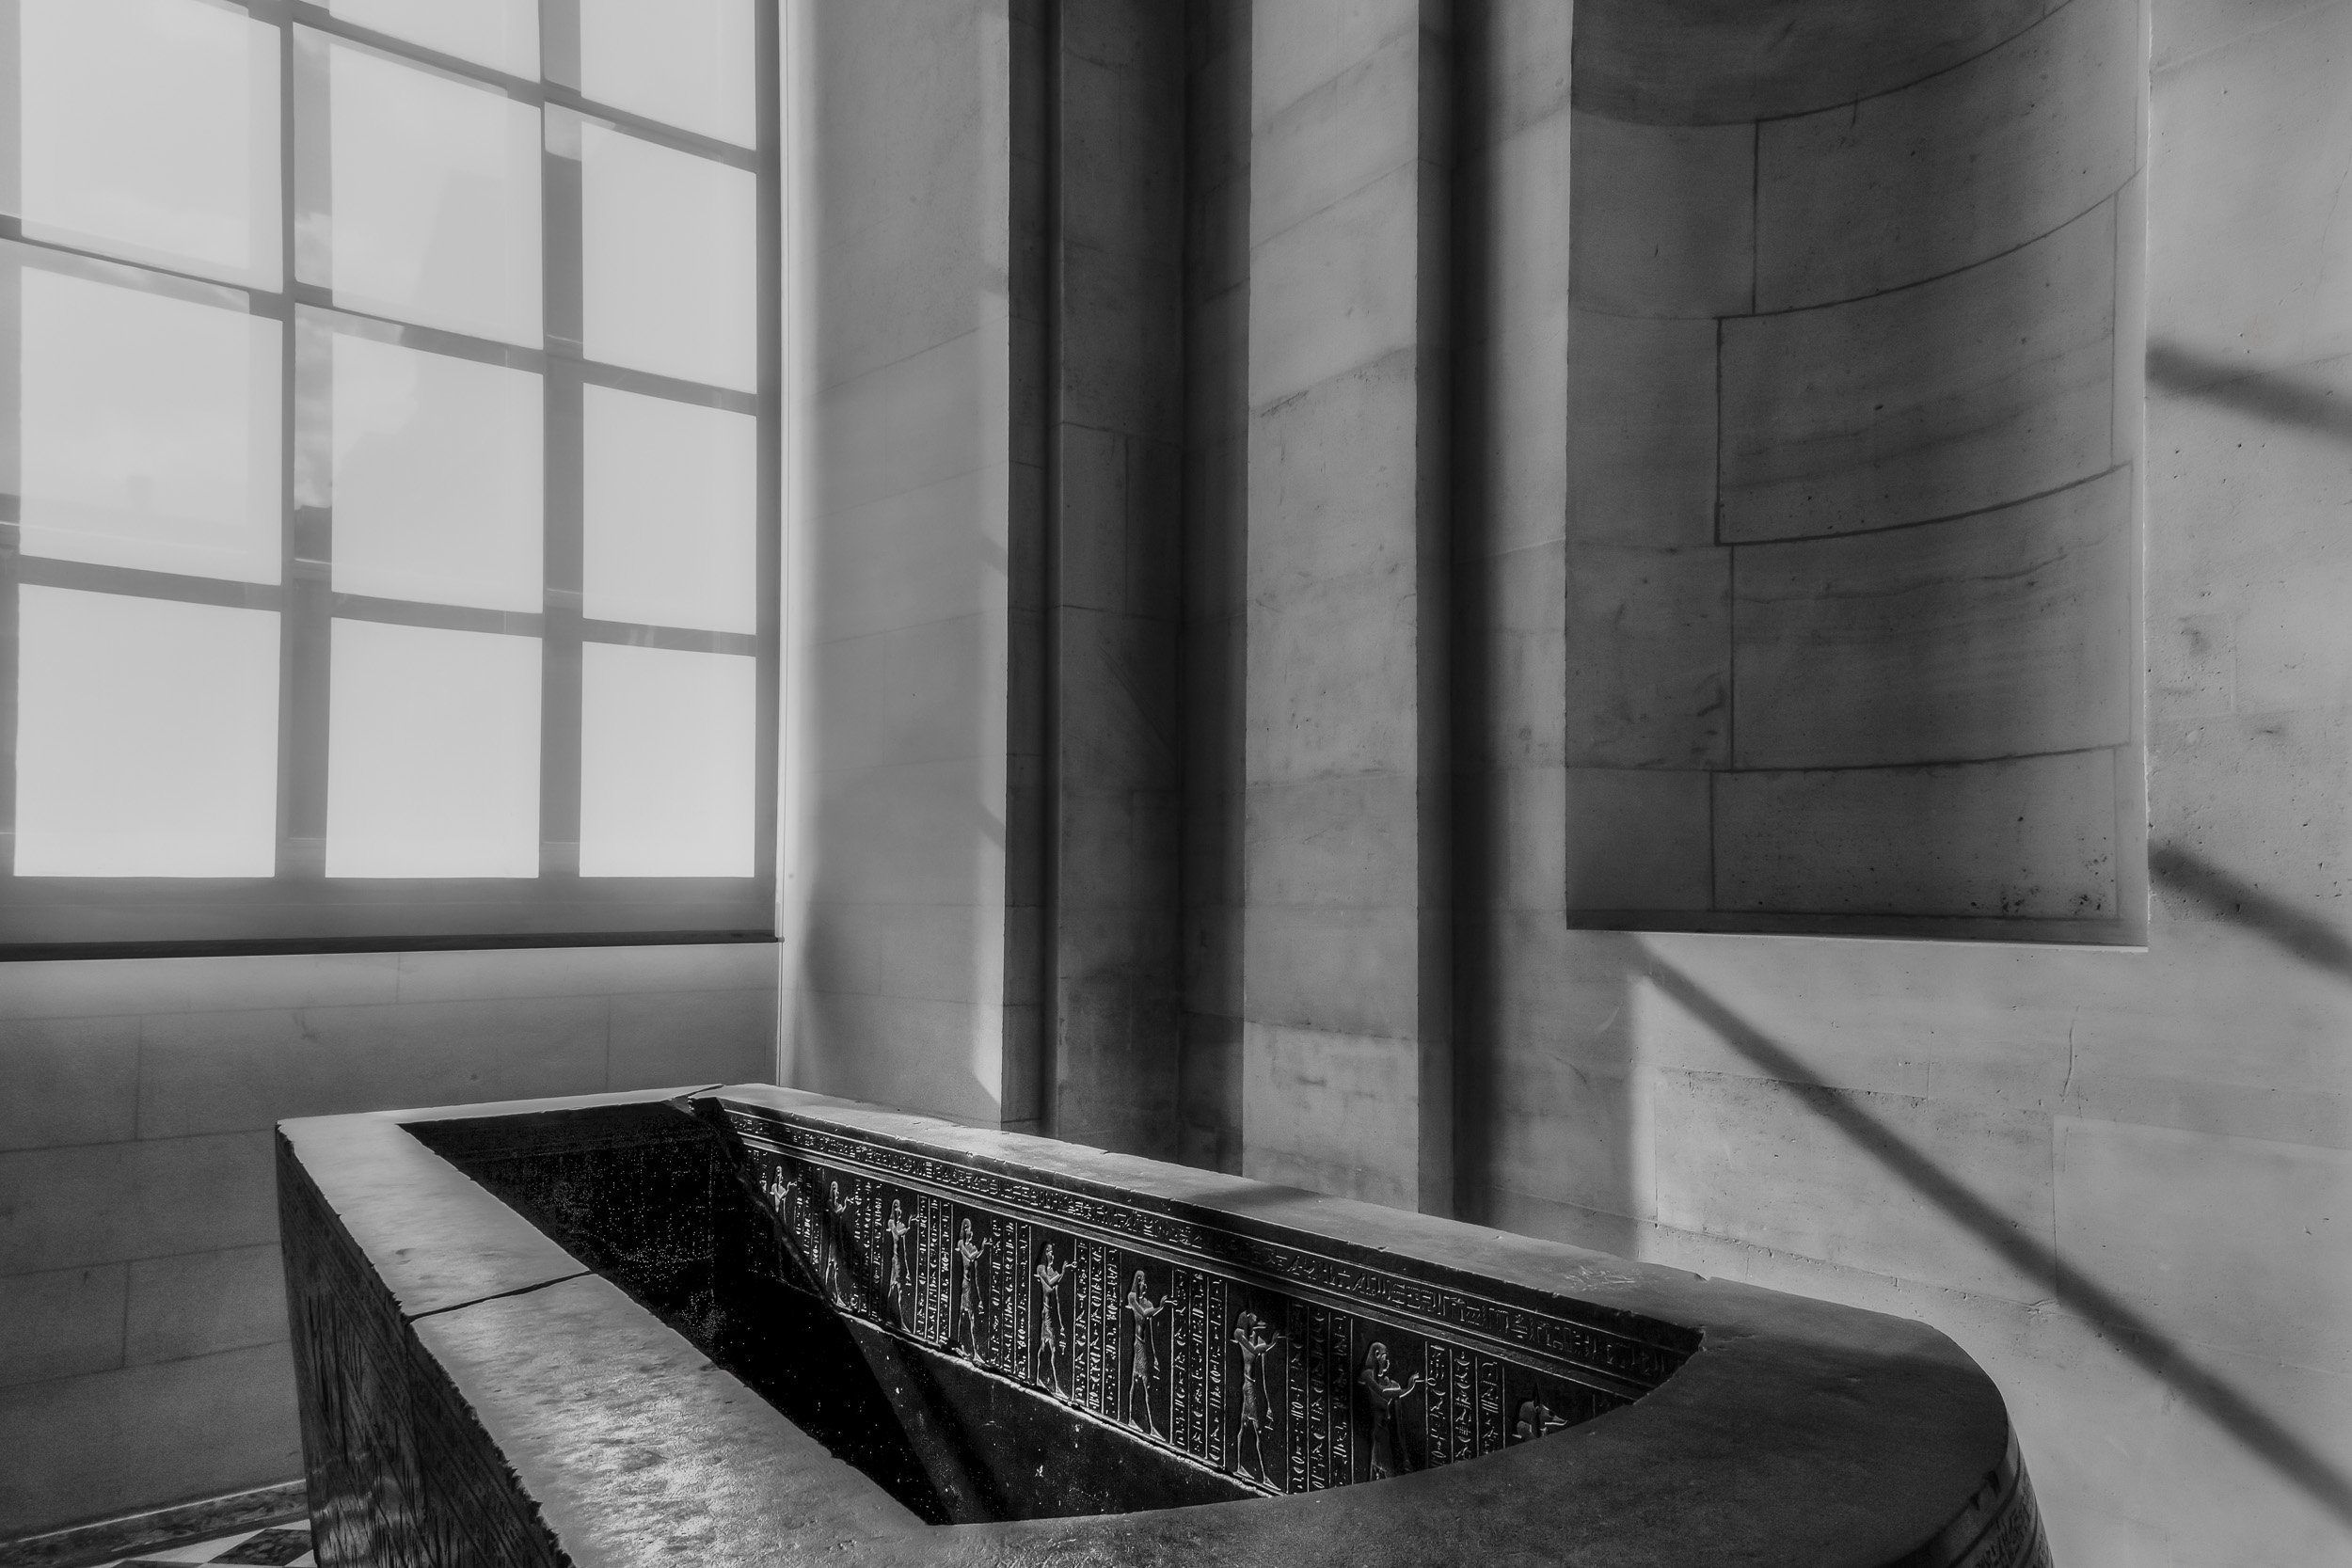 Dynamic shapes and shadows providing the perfect setting for this  Egyptian Sarcophagus  within the  Louvre  in  Paris, France